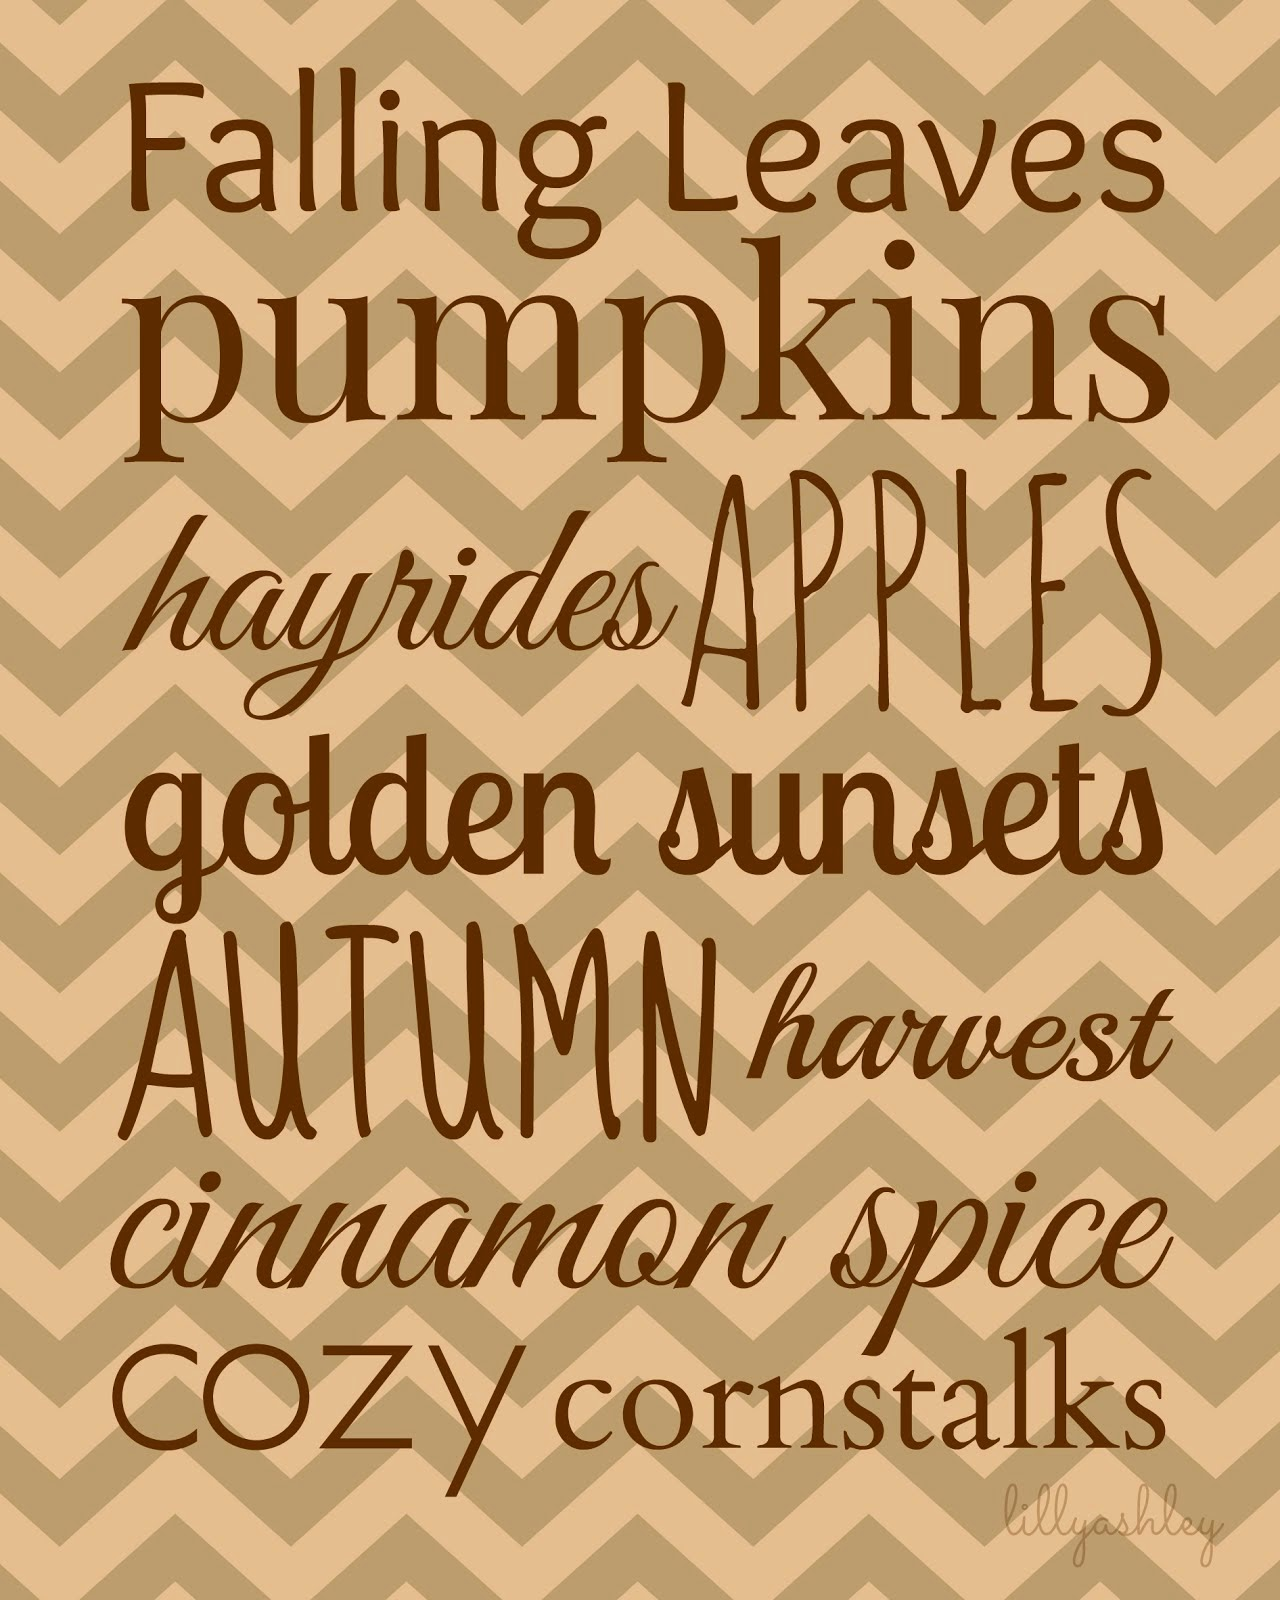 Happy Fall, Y'all!